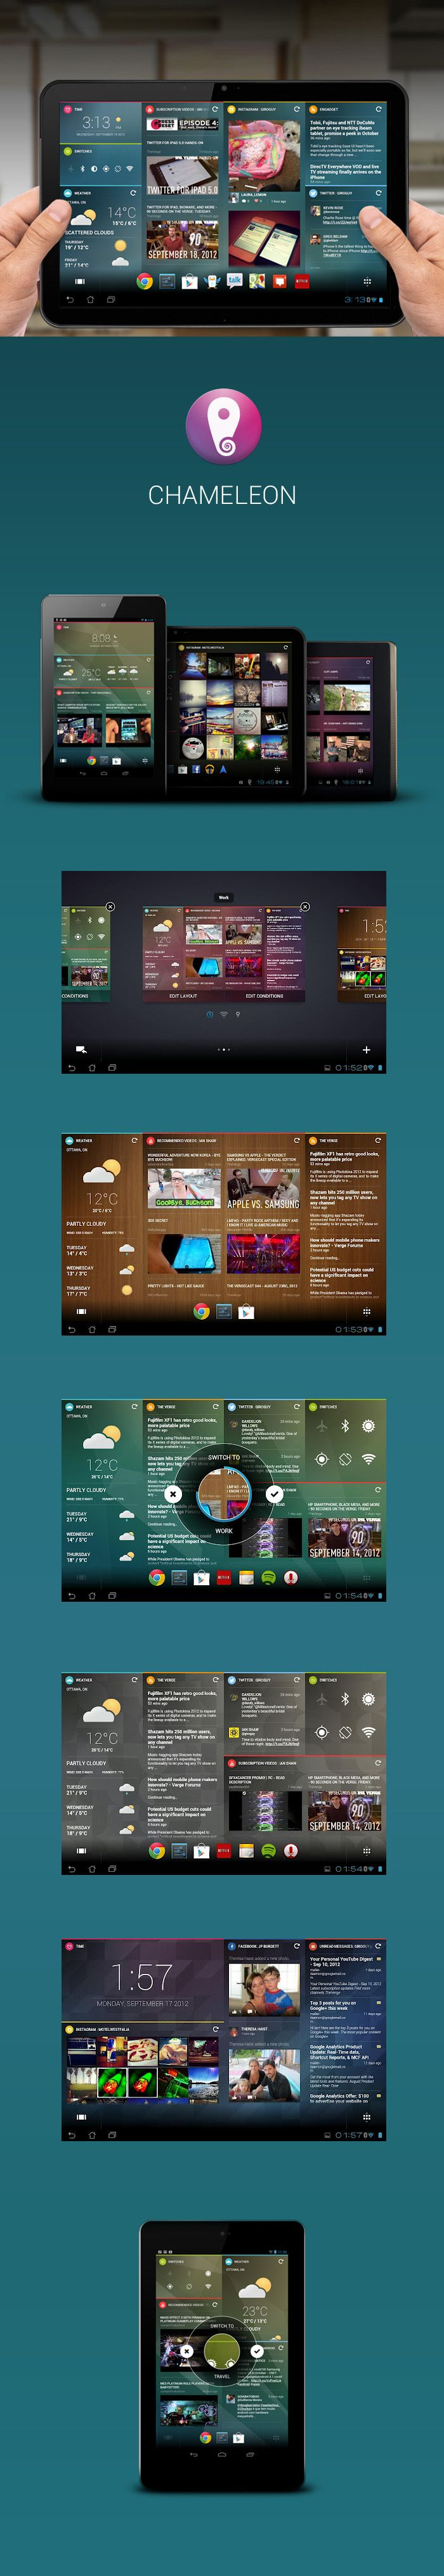 112 best ipad ui design images on pinterest user interface chameleon